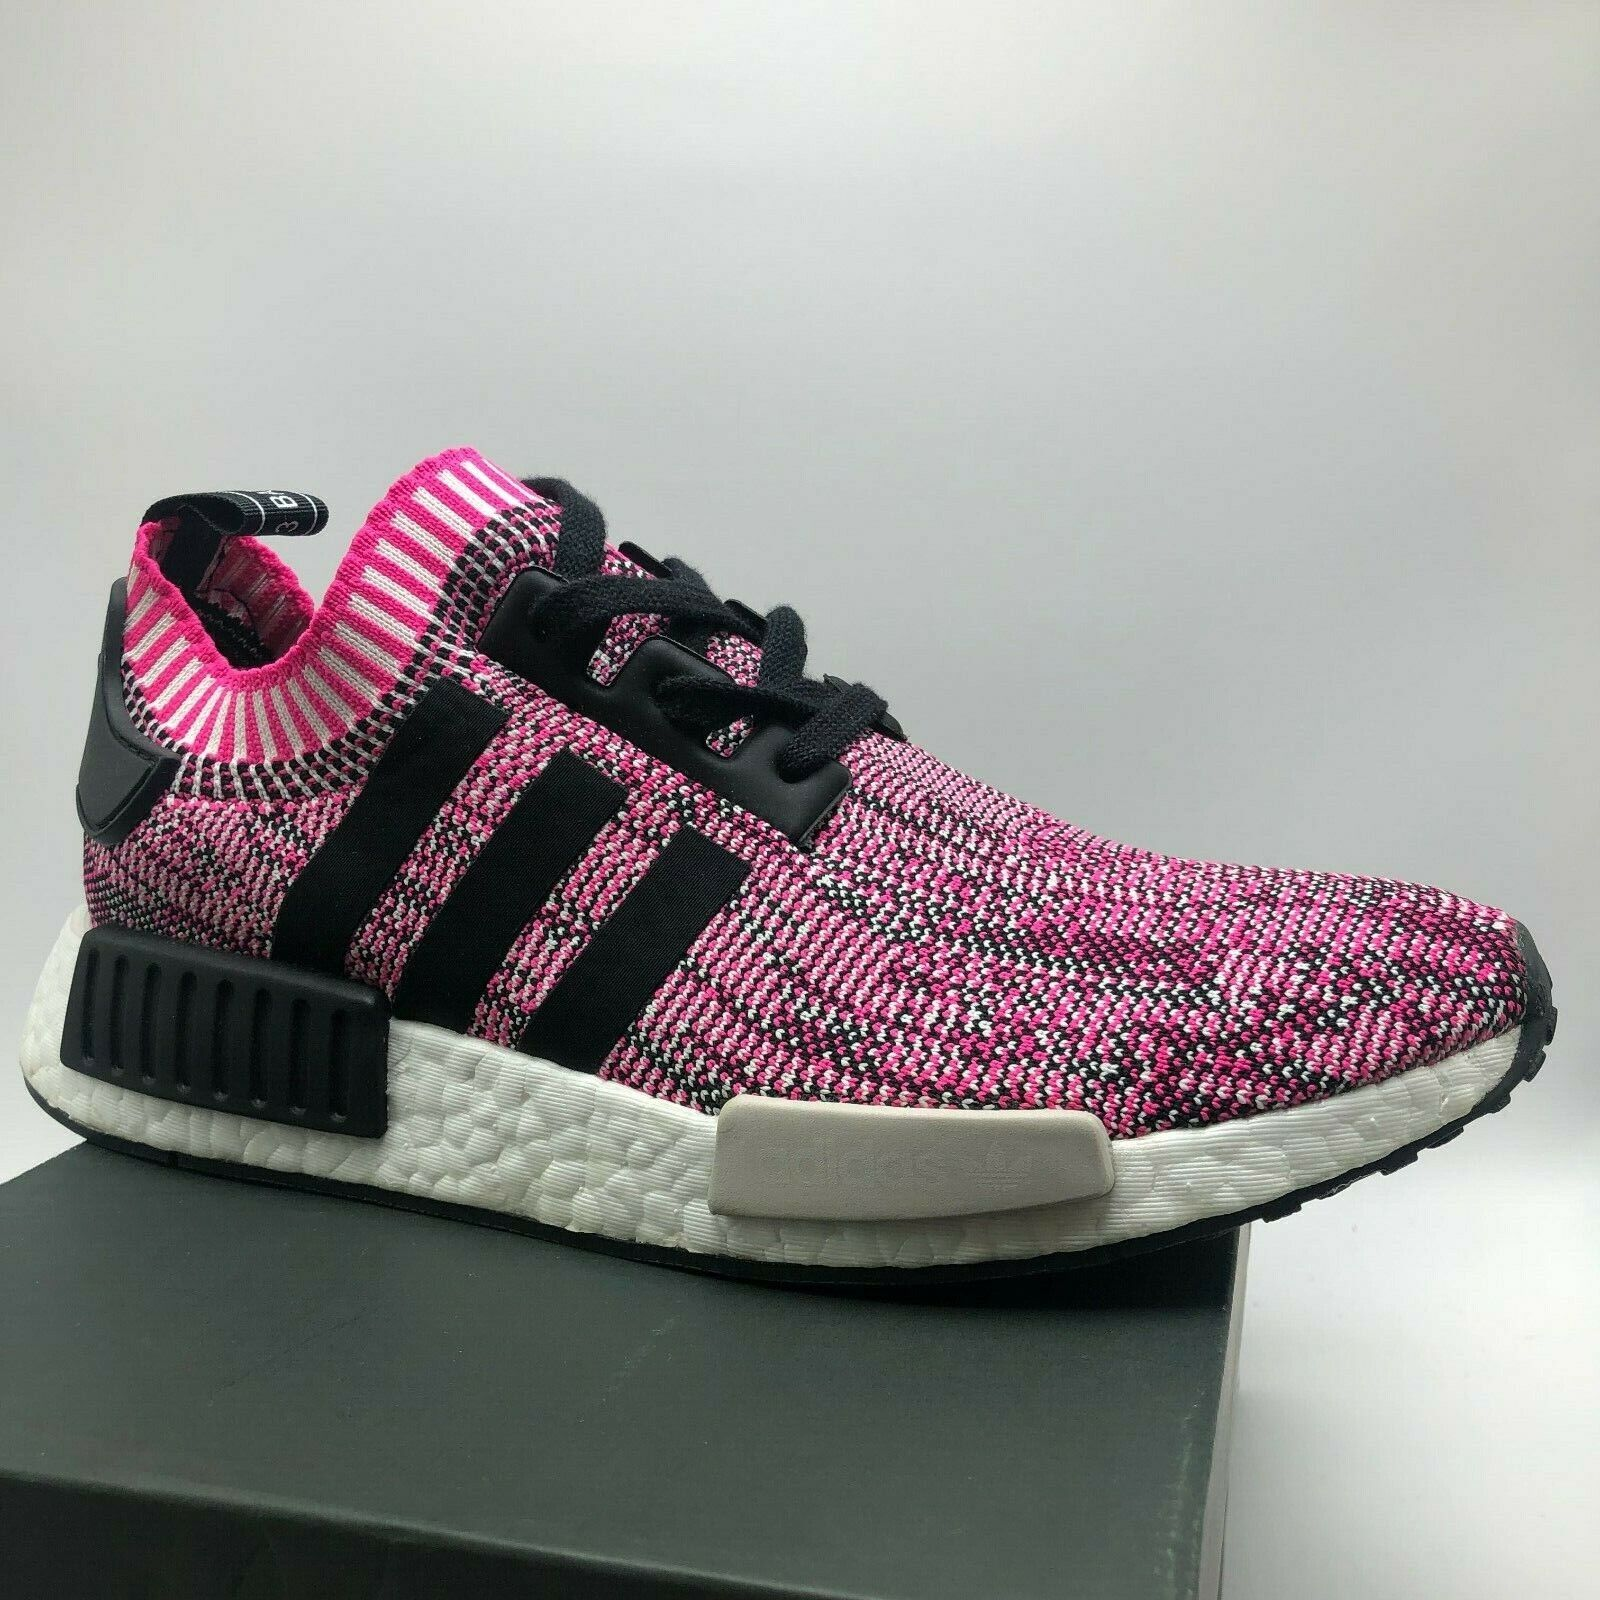 Adidas Nmd R1 Womens Offspring By3059 Vapour Pink Light Onix Sz